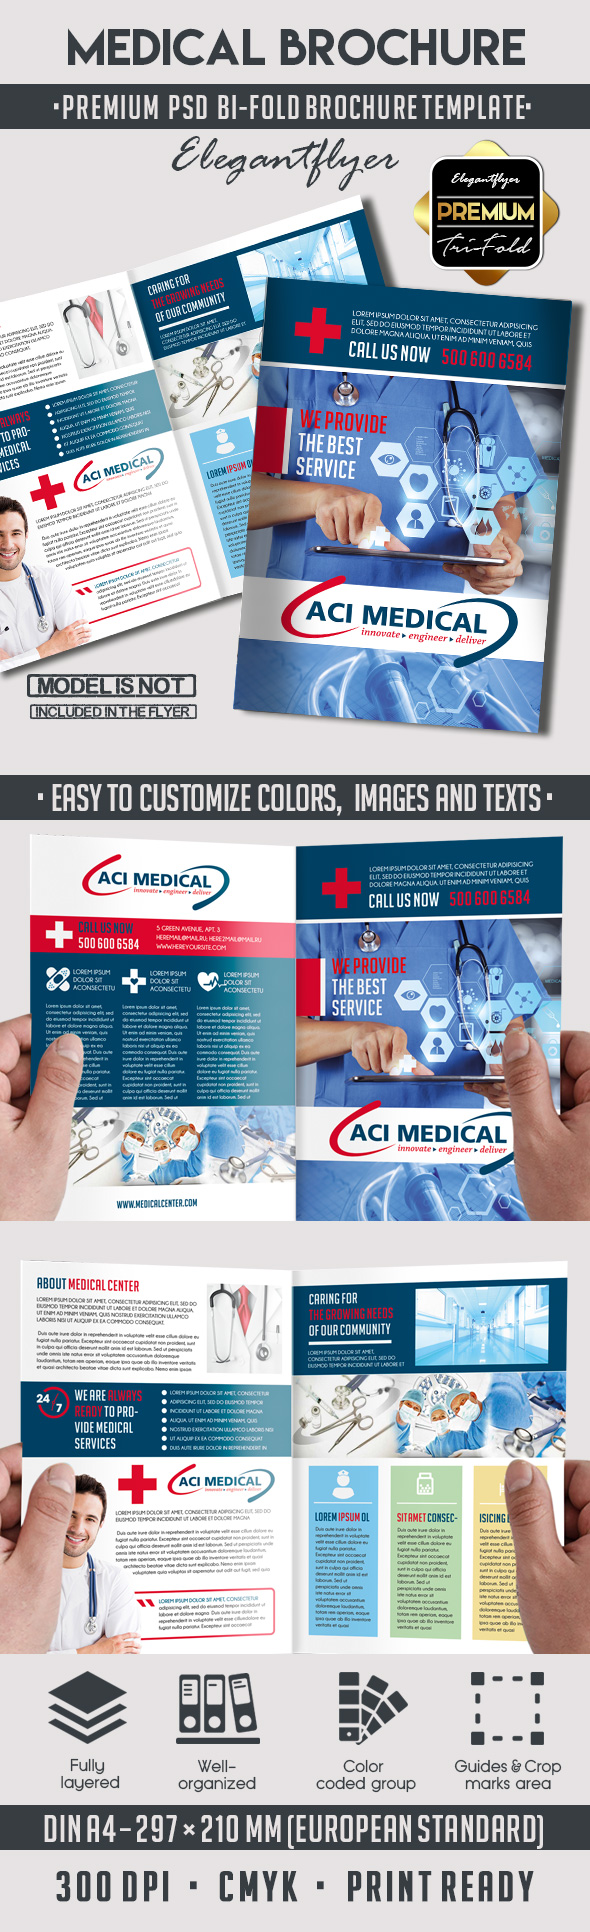 Medical – Premium Bi-Fold PSD Brochure Template